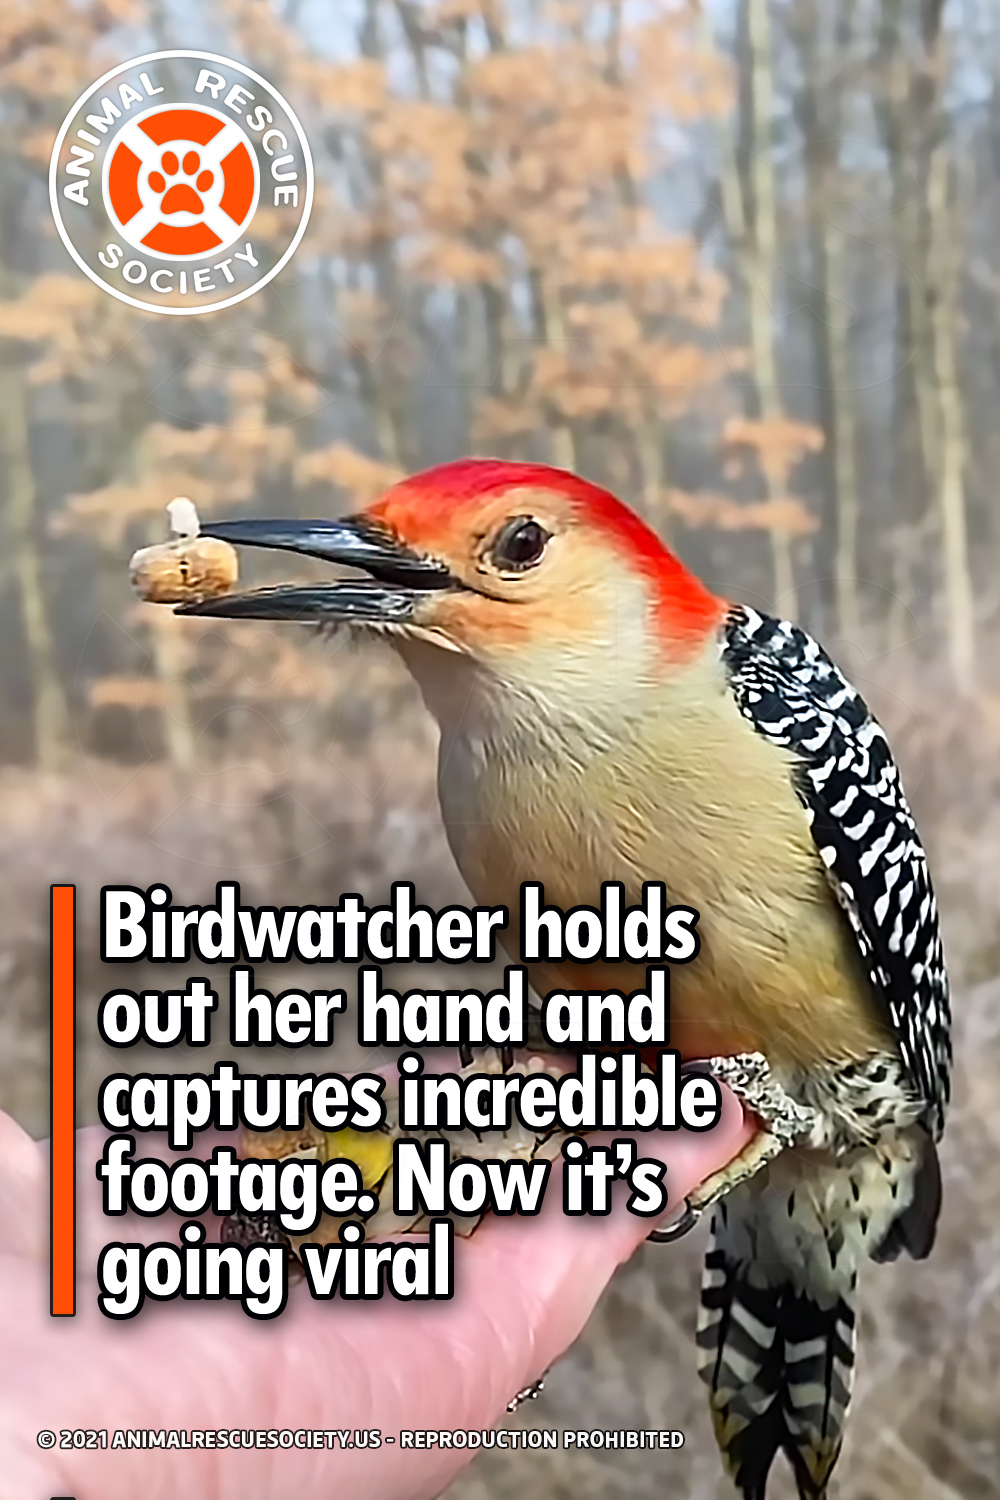 Birdwatcher holds out her hand and captures incredible footage. Now it's going viral